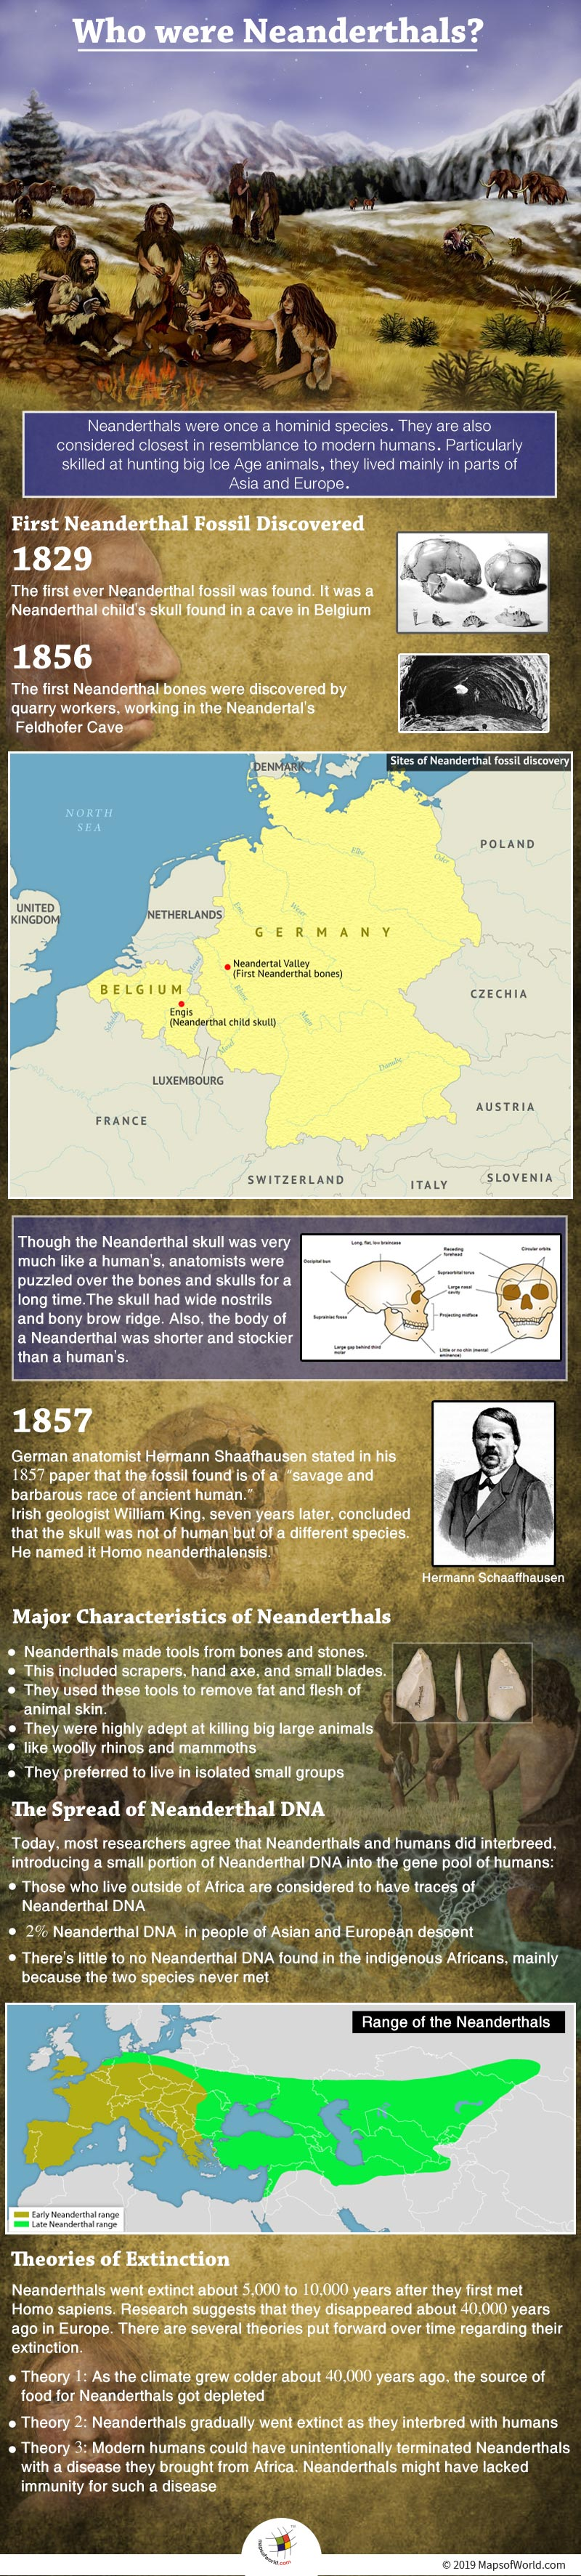 Infographic Showing Details on Neanderthals